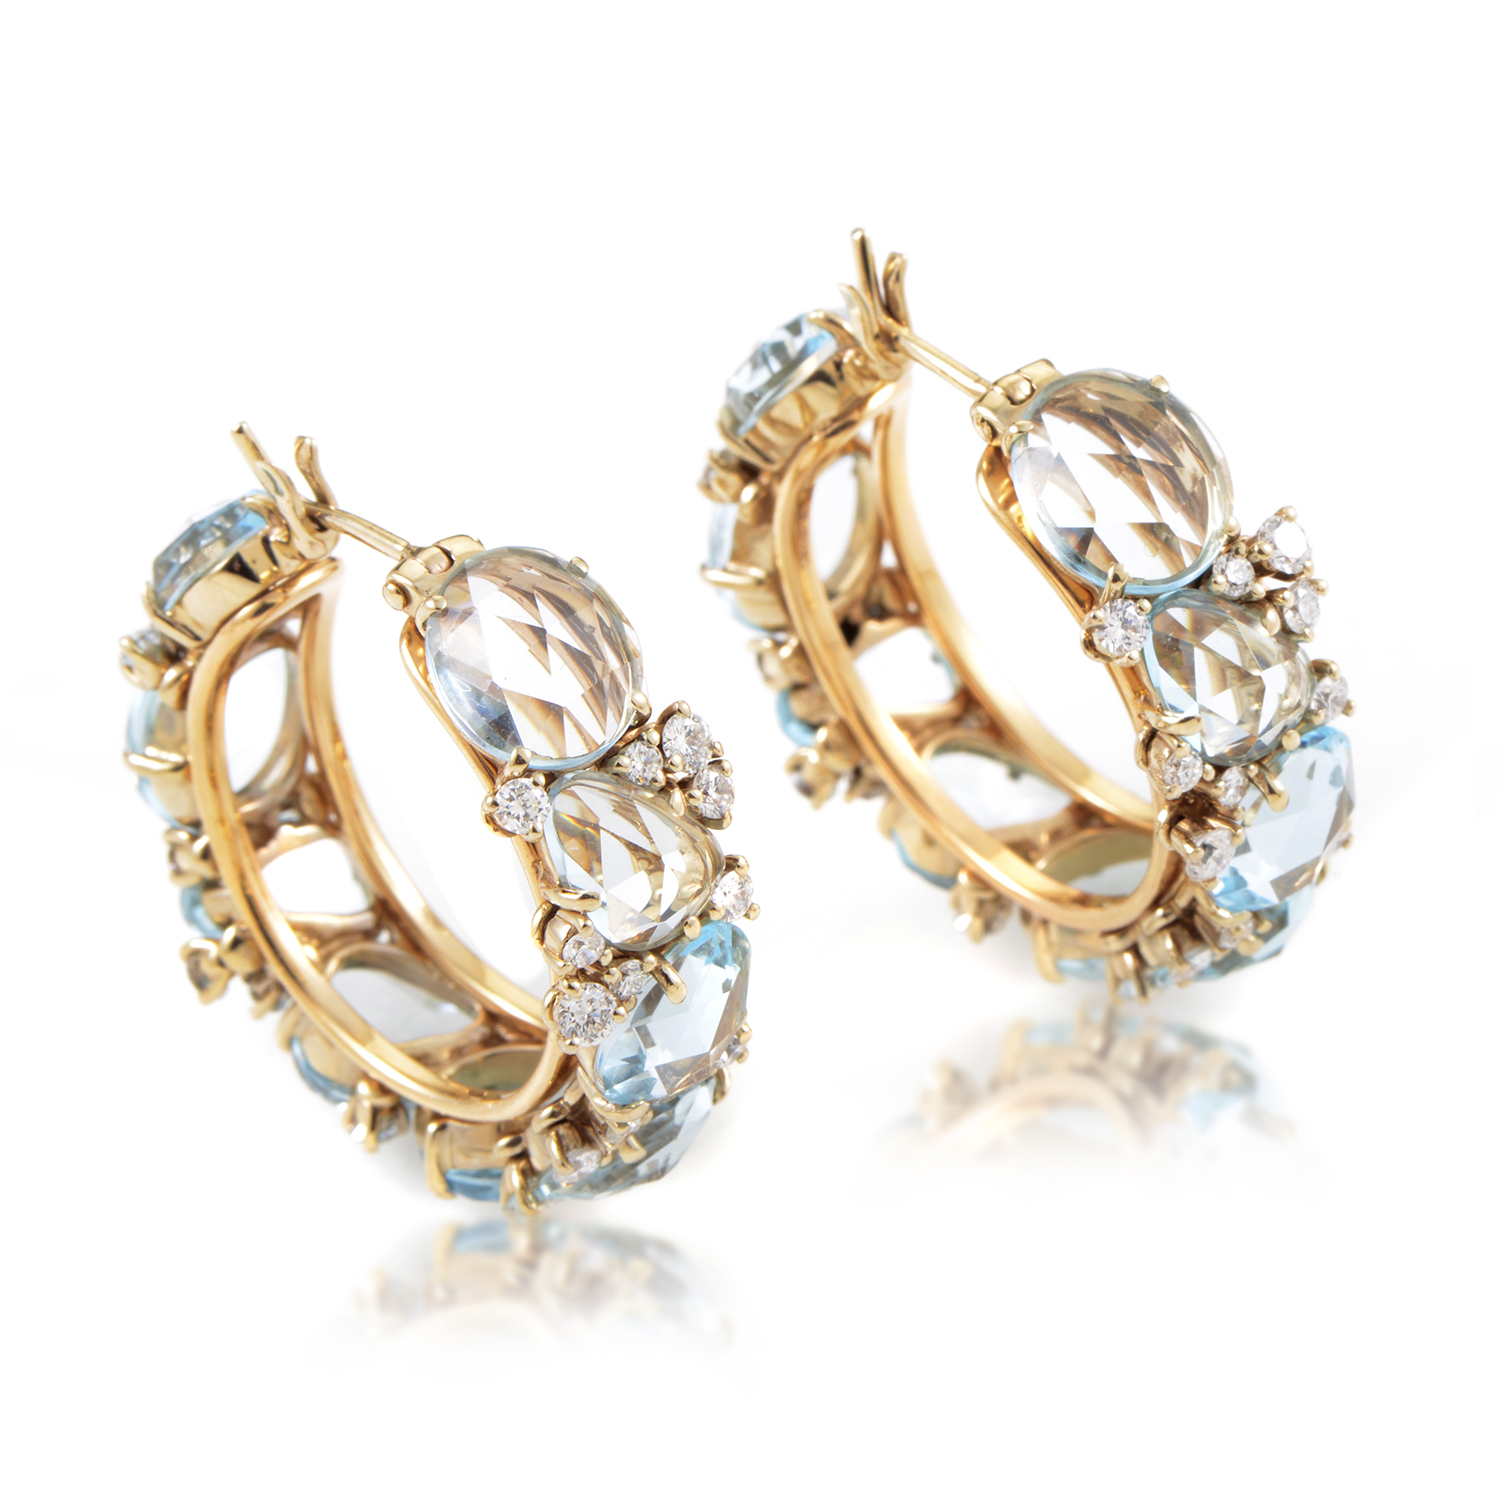 Pomellato Lulõ Women's 18K Yellow Gold Topaz & Diamond Hoop Earrings